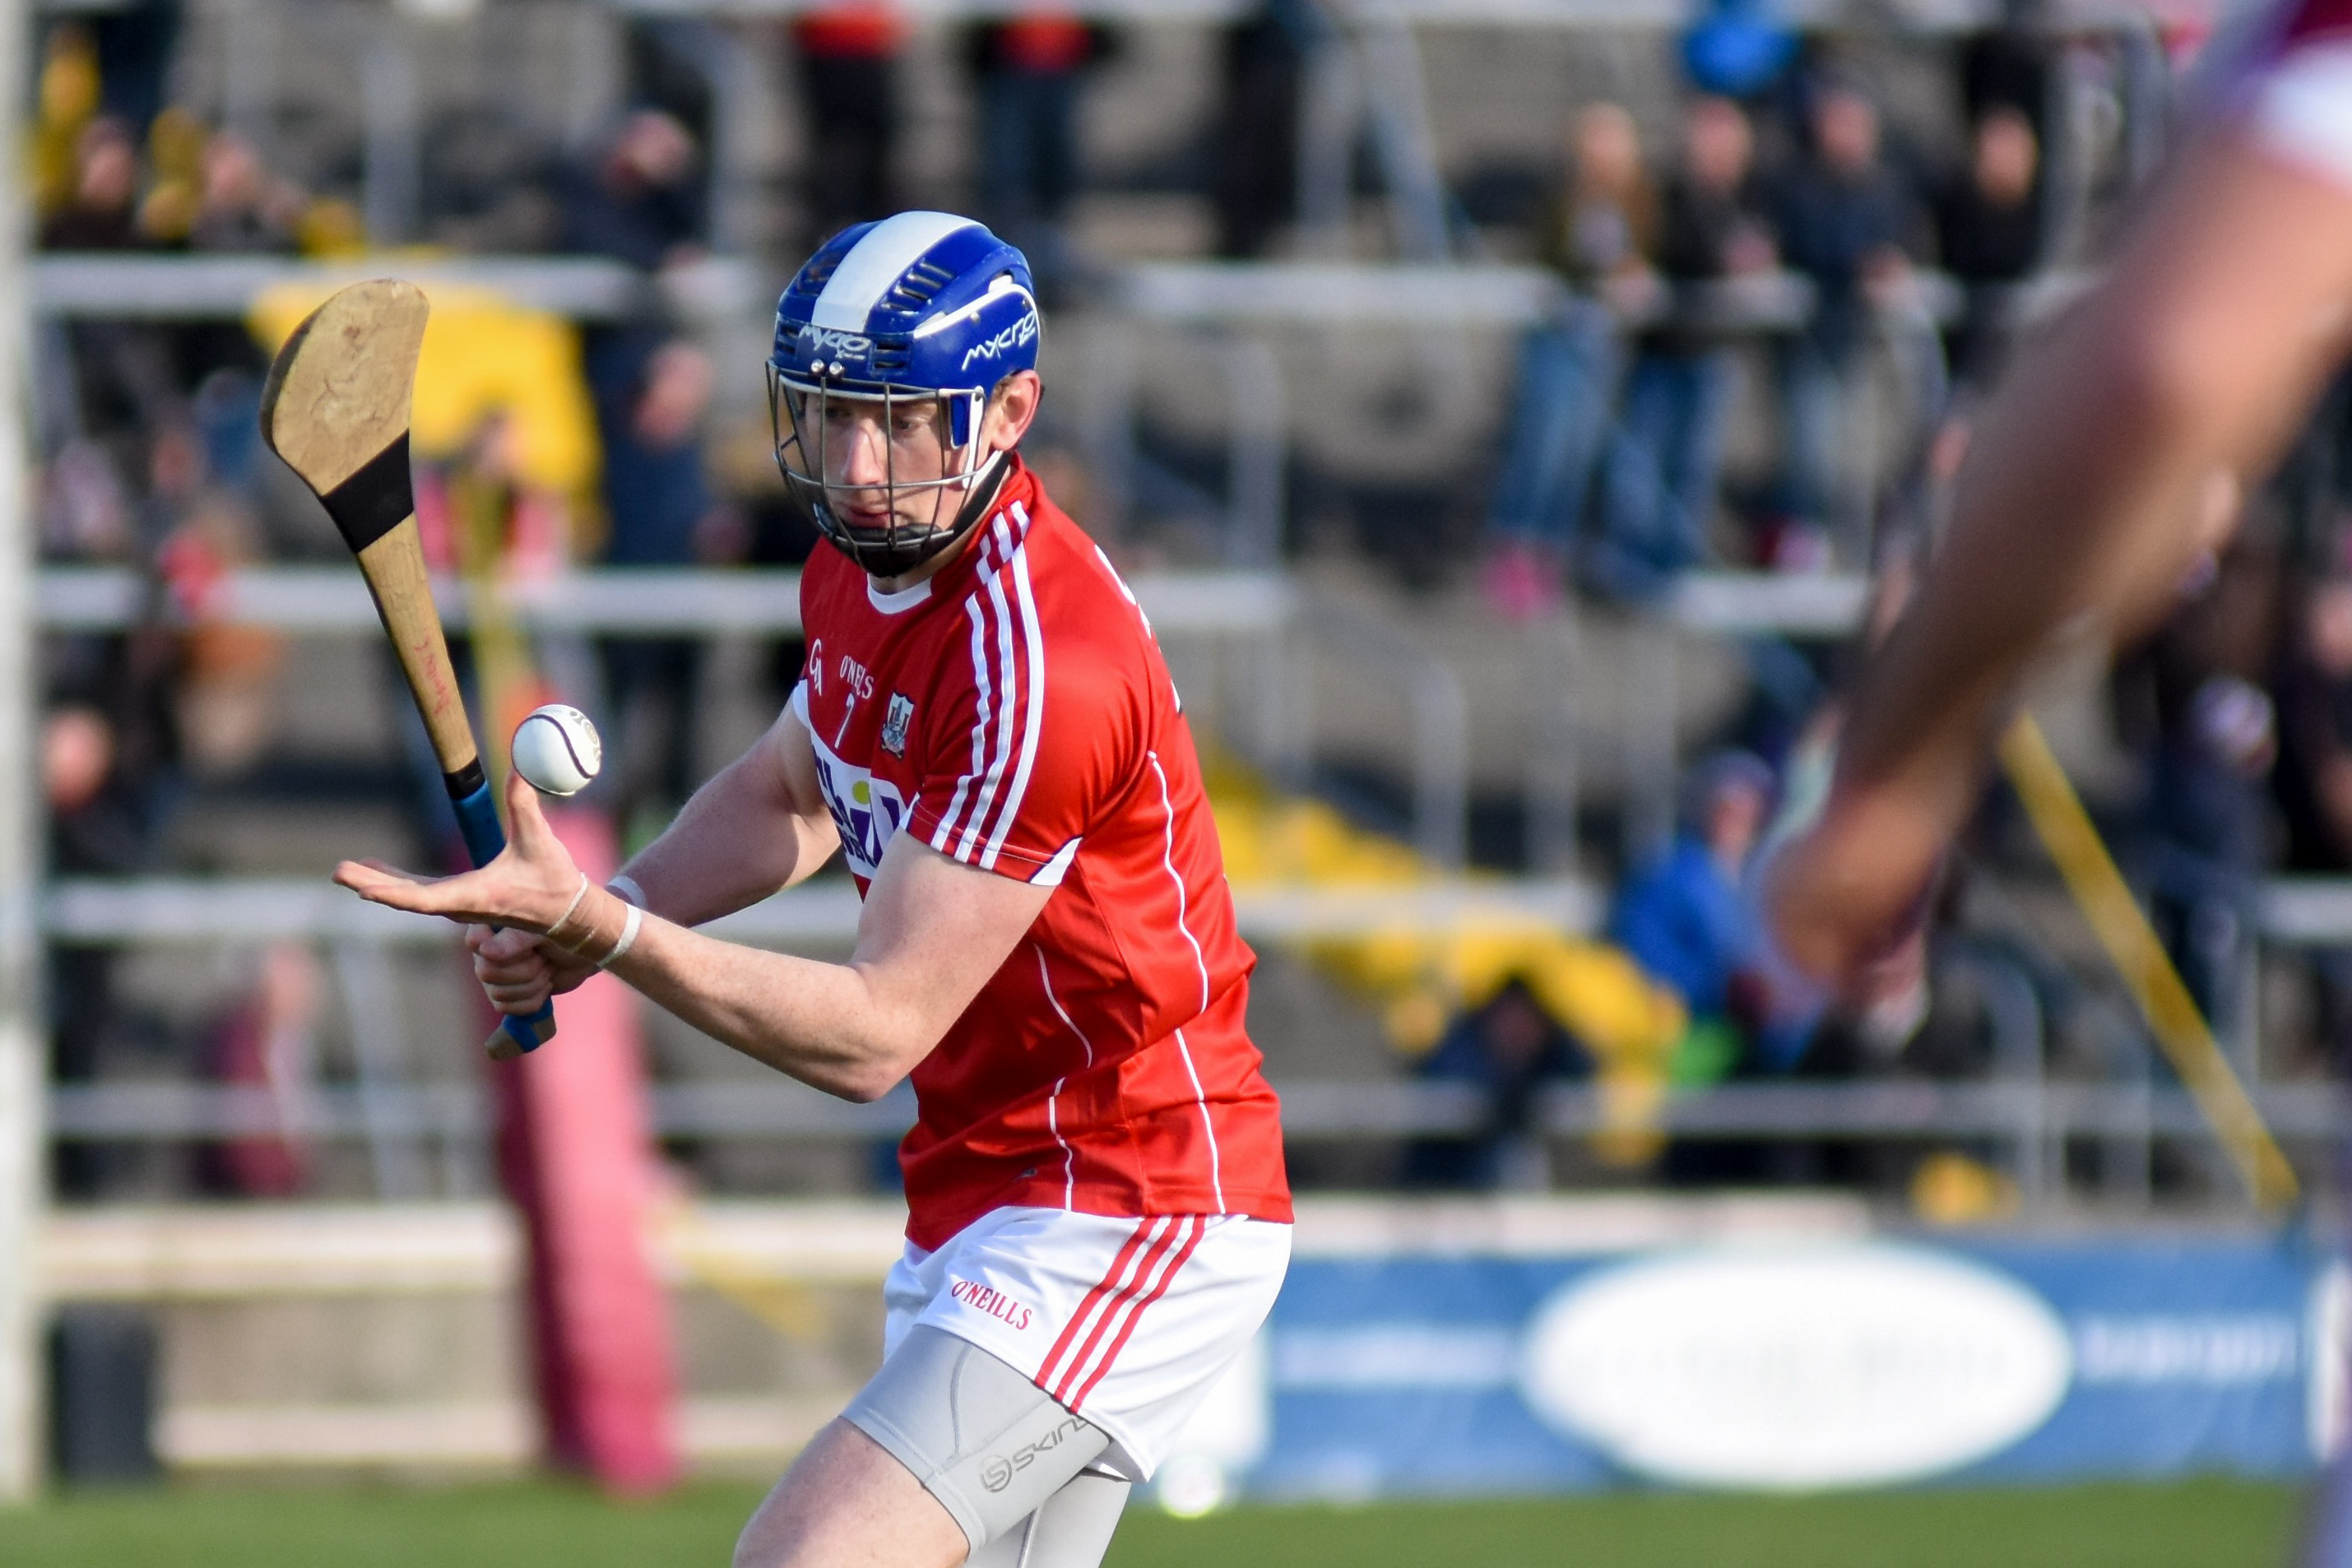 14/02/2016 SPORT: NHL Galway v Cork. Damien Cahalane (Cork). Photo: Sean Ryan | sportsphoto.ie